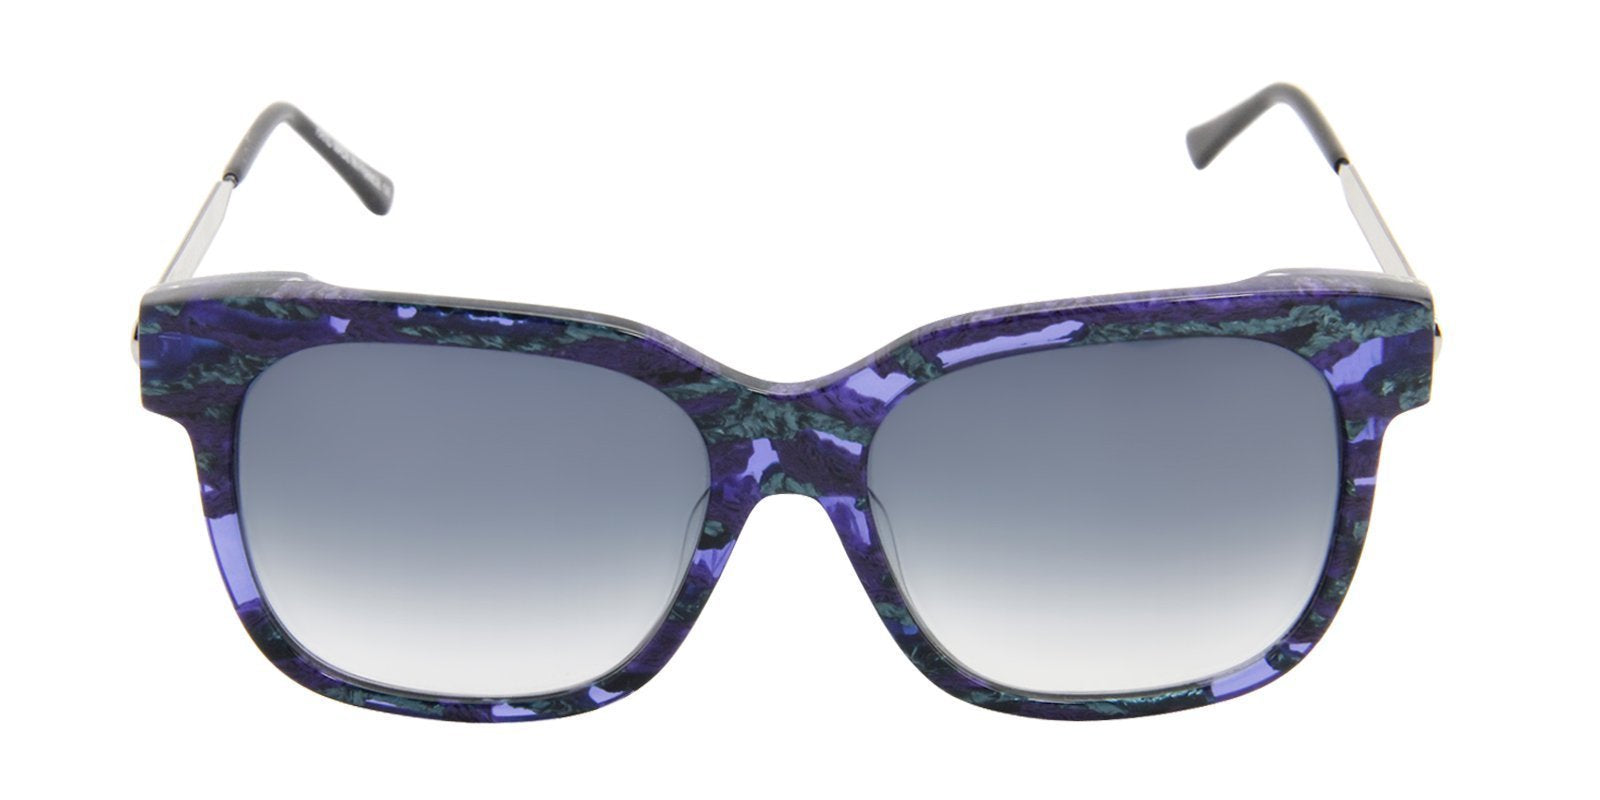 Thierry Lasry - Rapsody Blue Rectangular Women Sunglasses - 57mm-Sunglasses-Designer Eyes